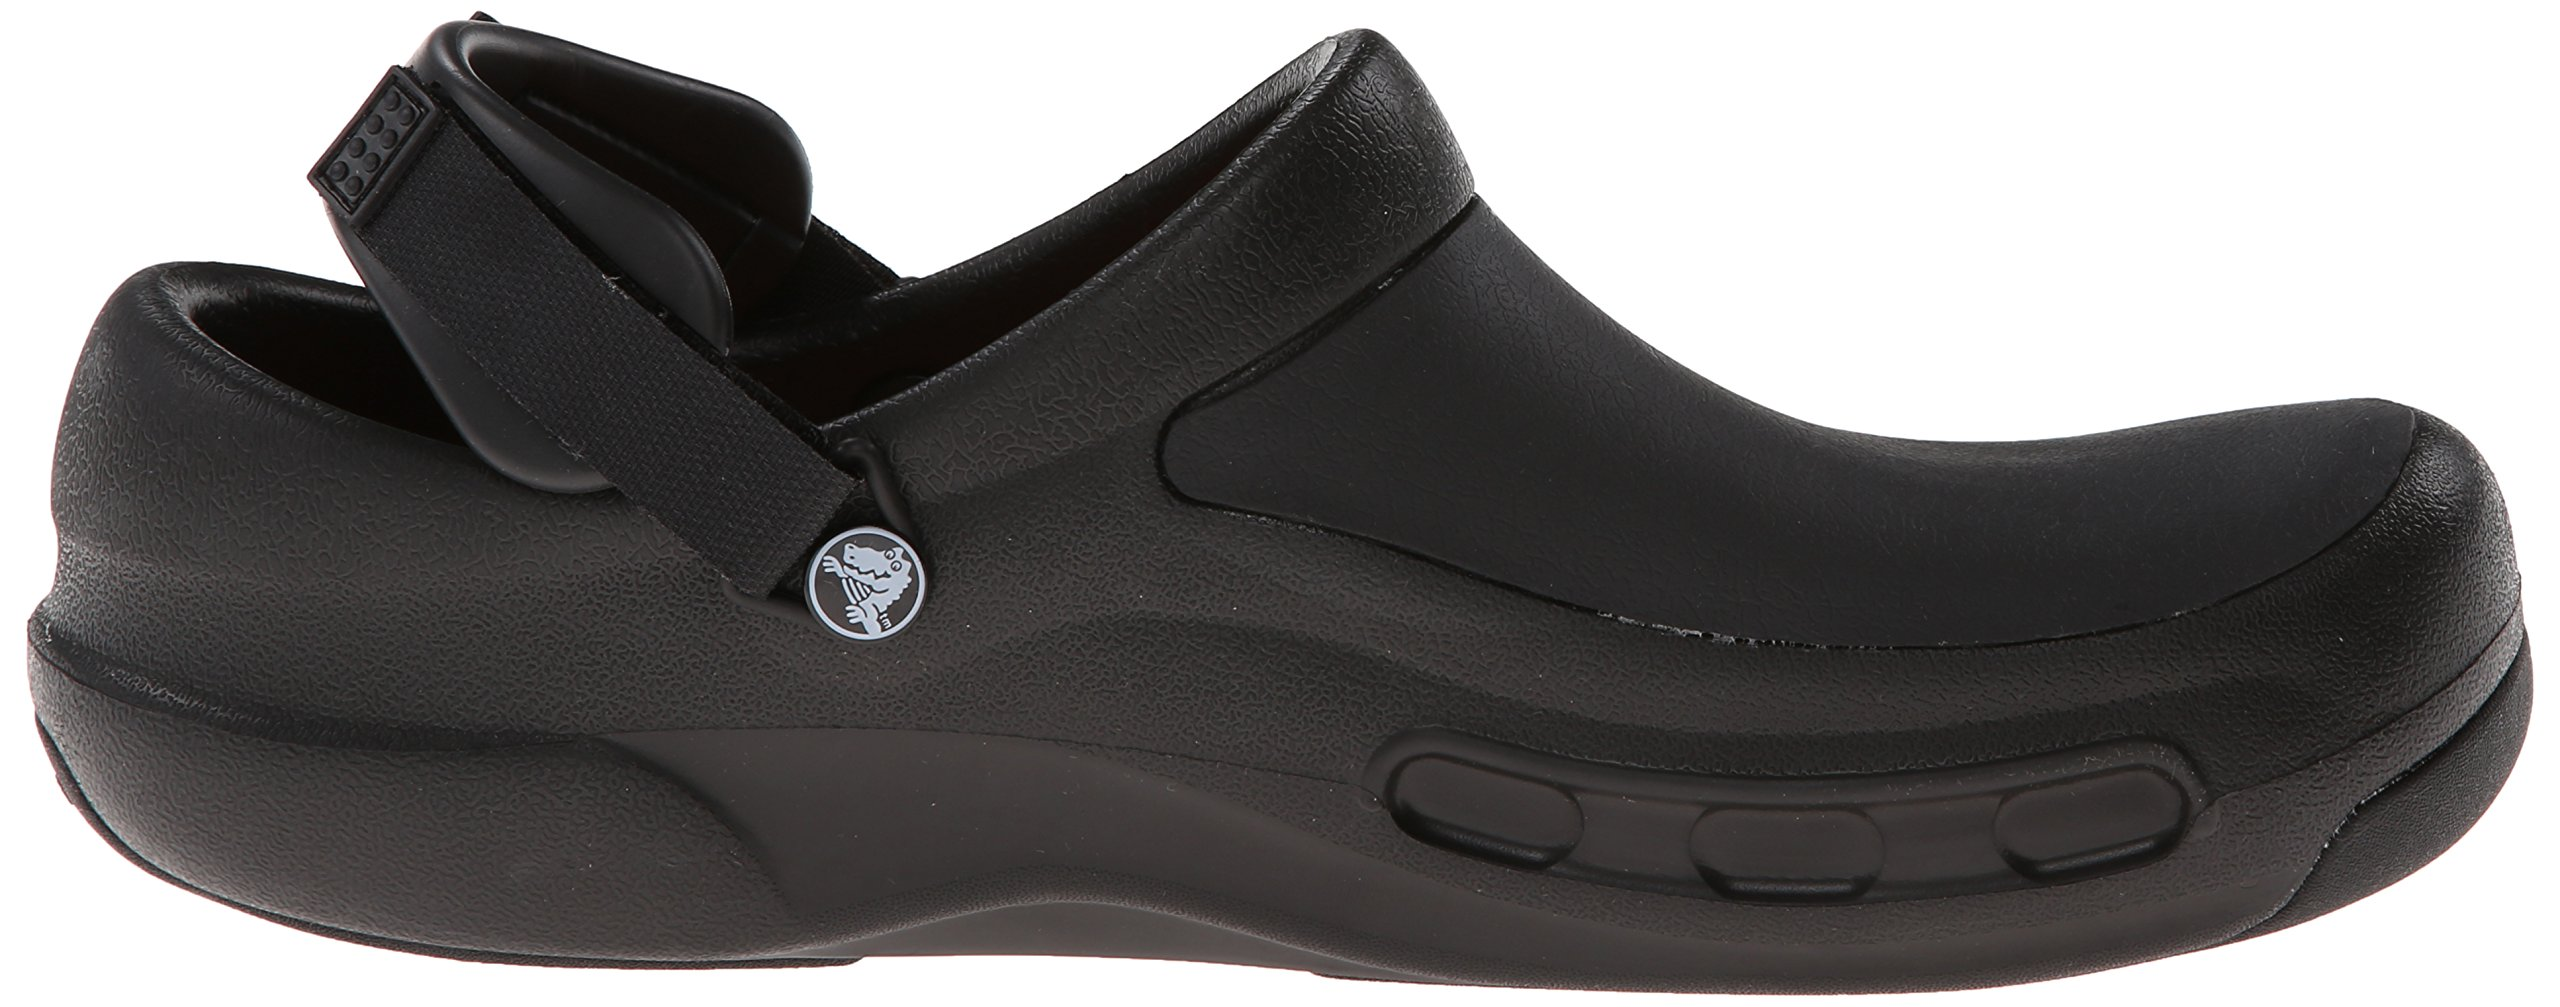 Crocs Men's 15010 Bistro Pro Clog,Black,11 M US by Crocs (Image #7)